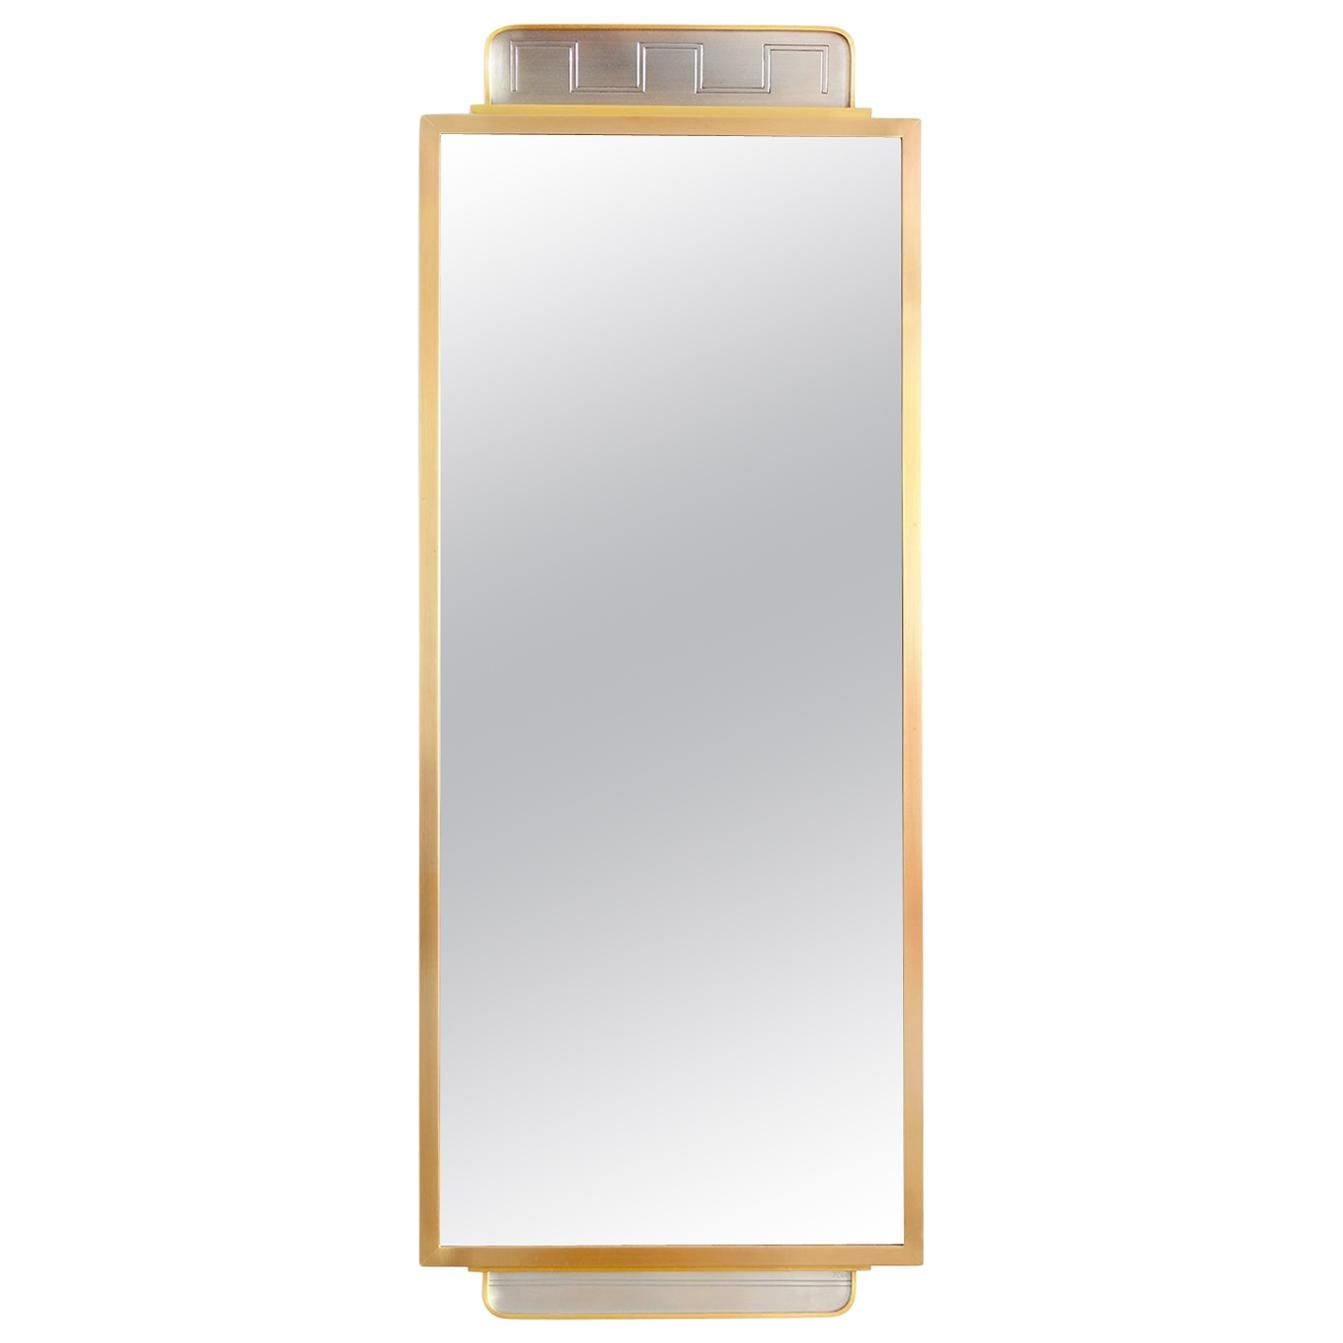 Tore Eldh Swedish Grace, Art Deco, Brass and Pewter Mirror, 1920's